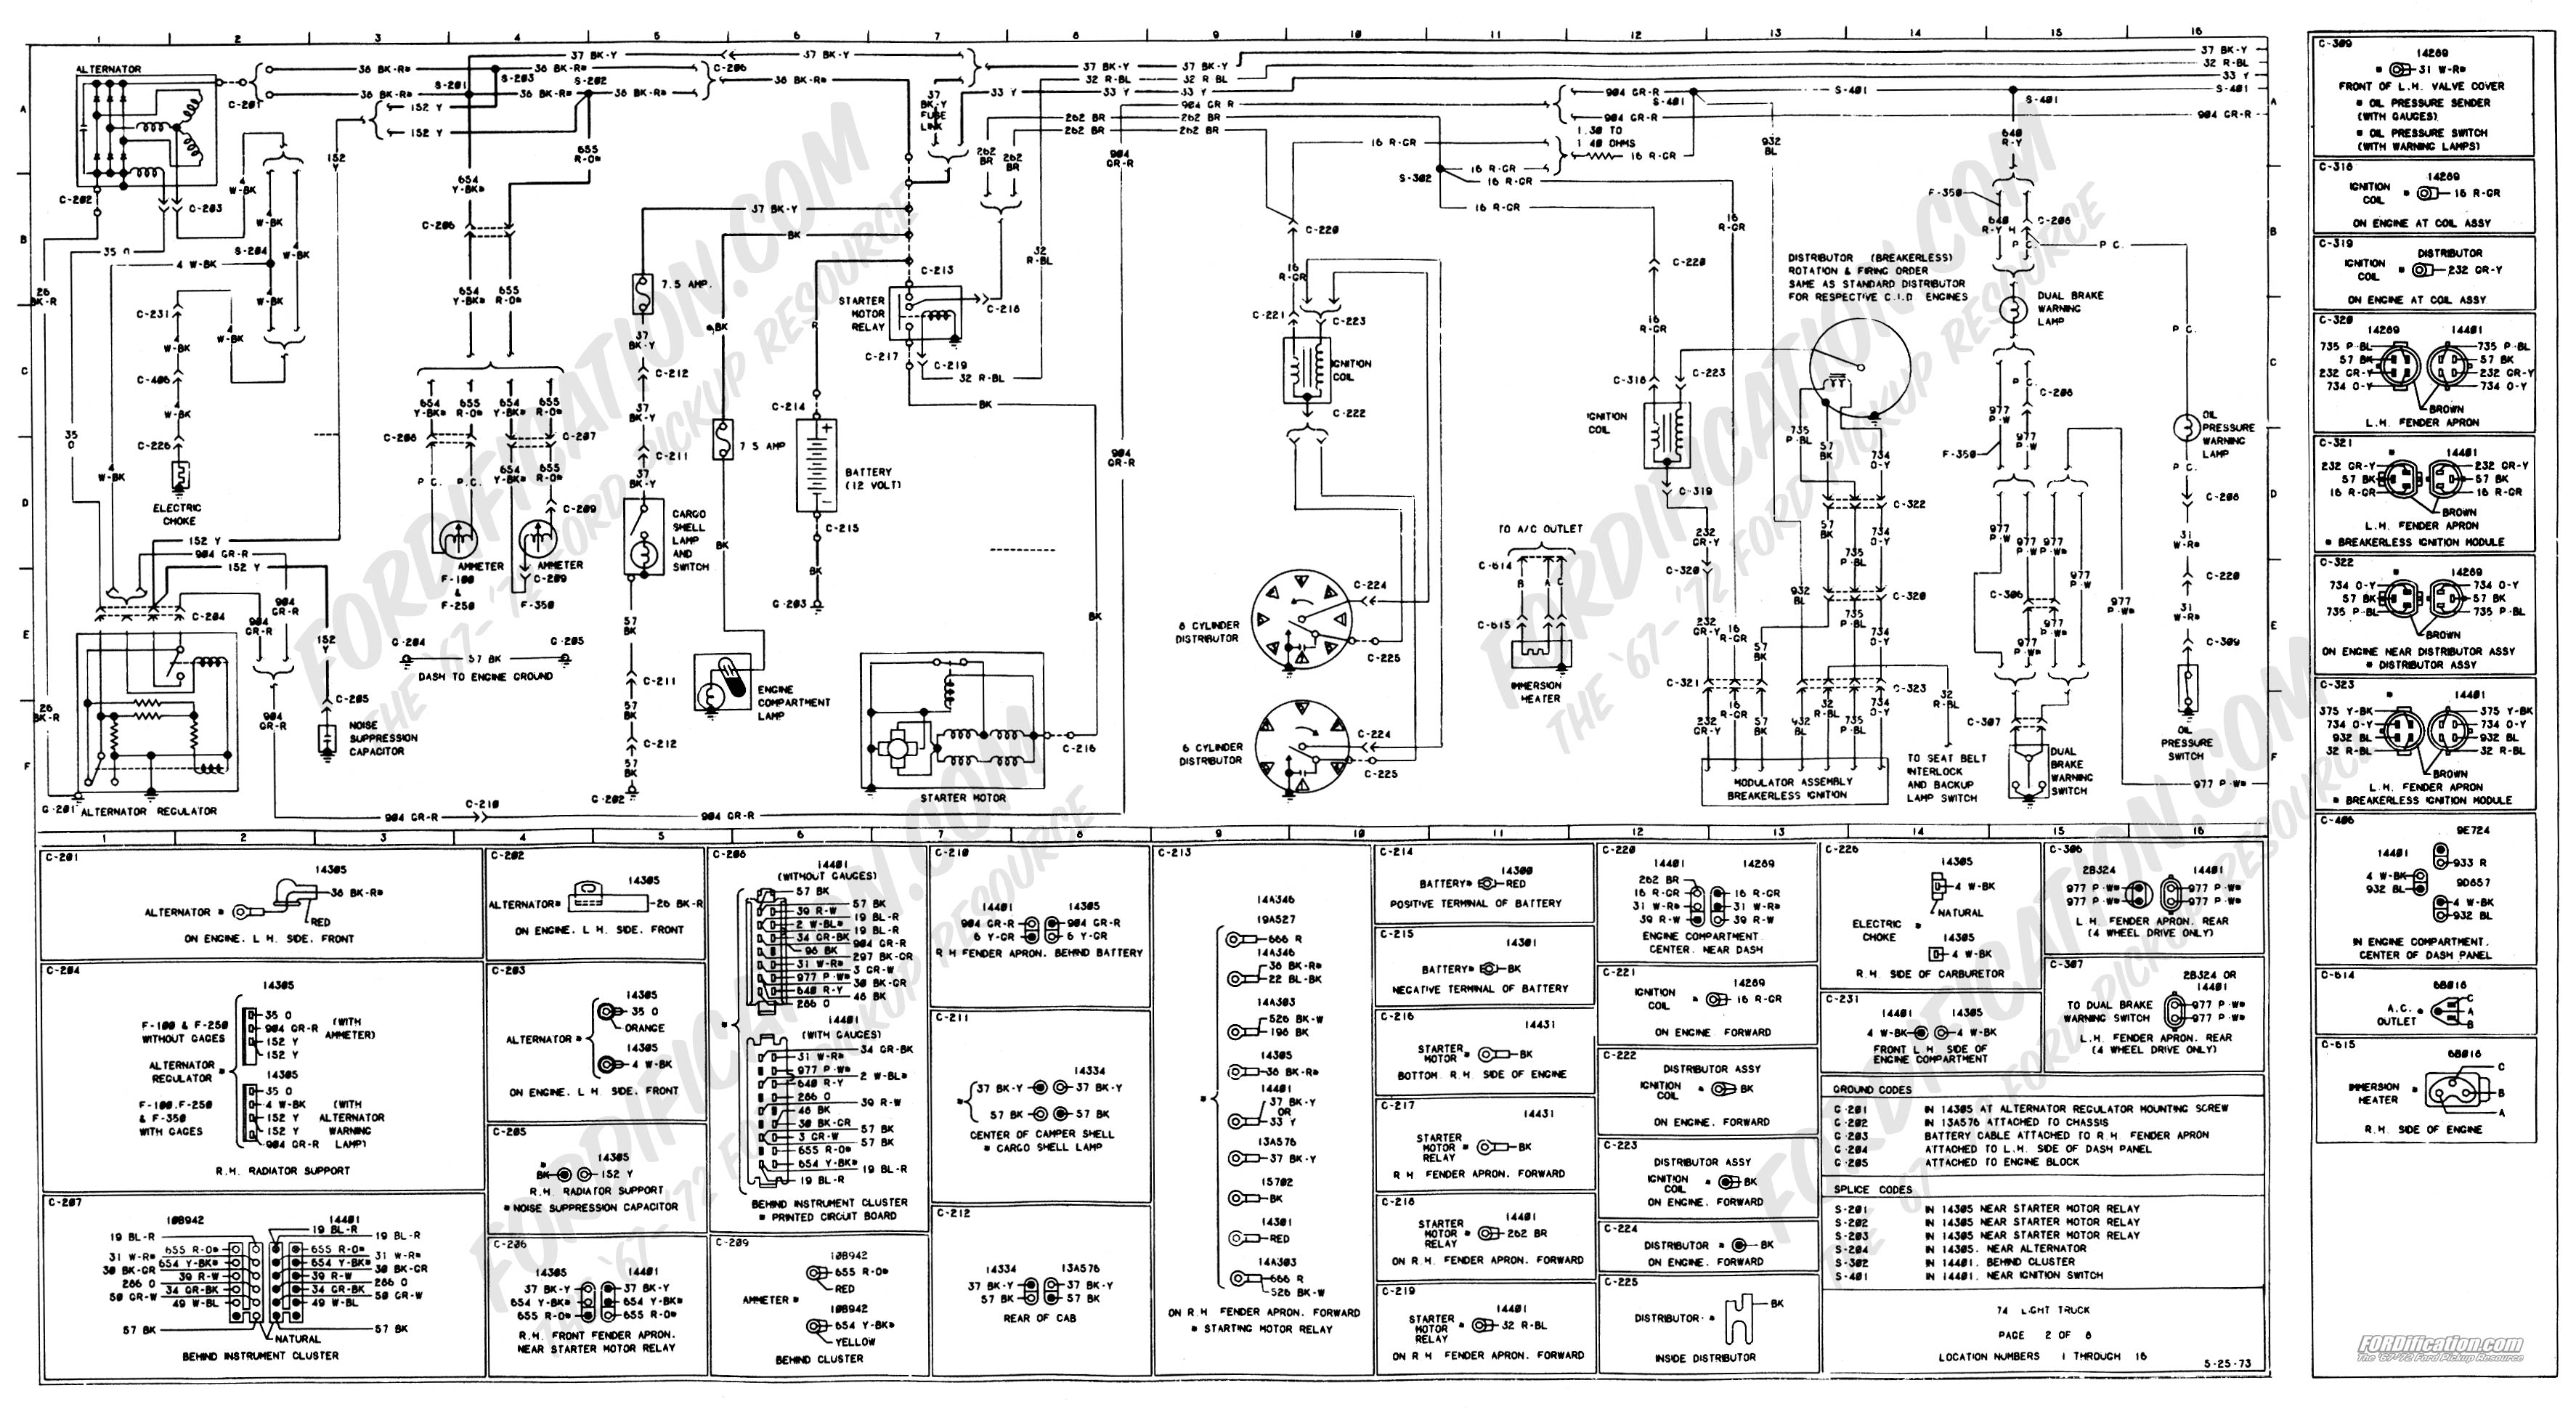 1982 Chevy Dome Light Wiring Schematic Diagram Will Be A 99 F350 Lamp Where Does This Wire Go Ford Truck Enthusiasts Forums Interior 1999 Yukon Switch